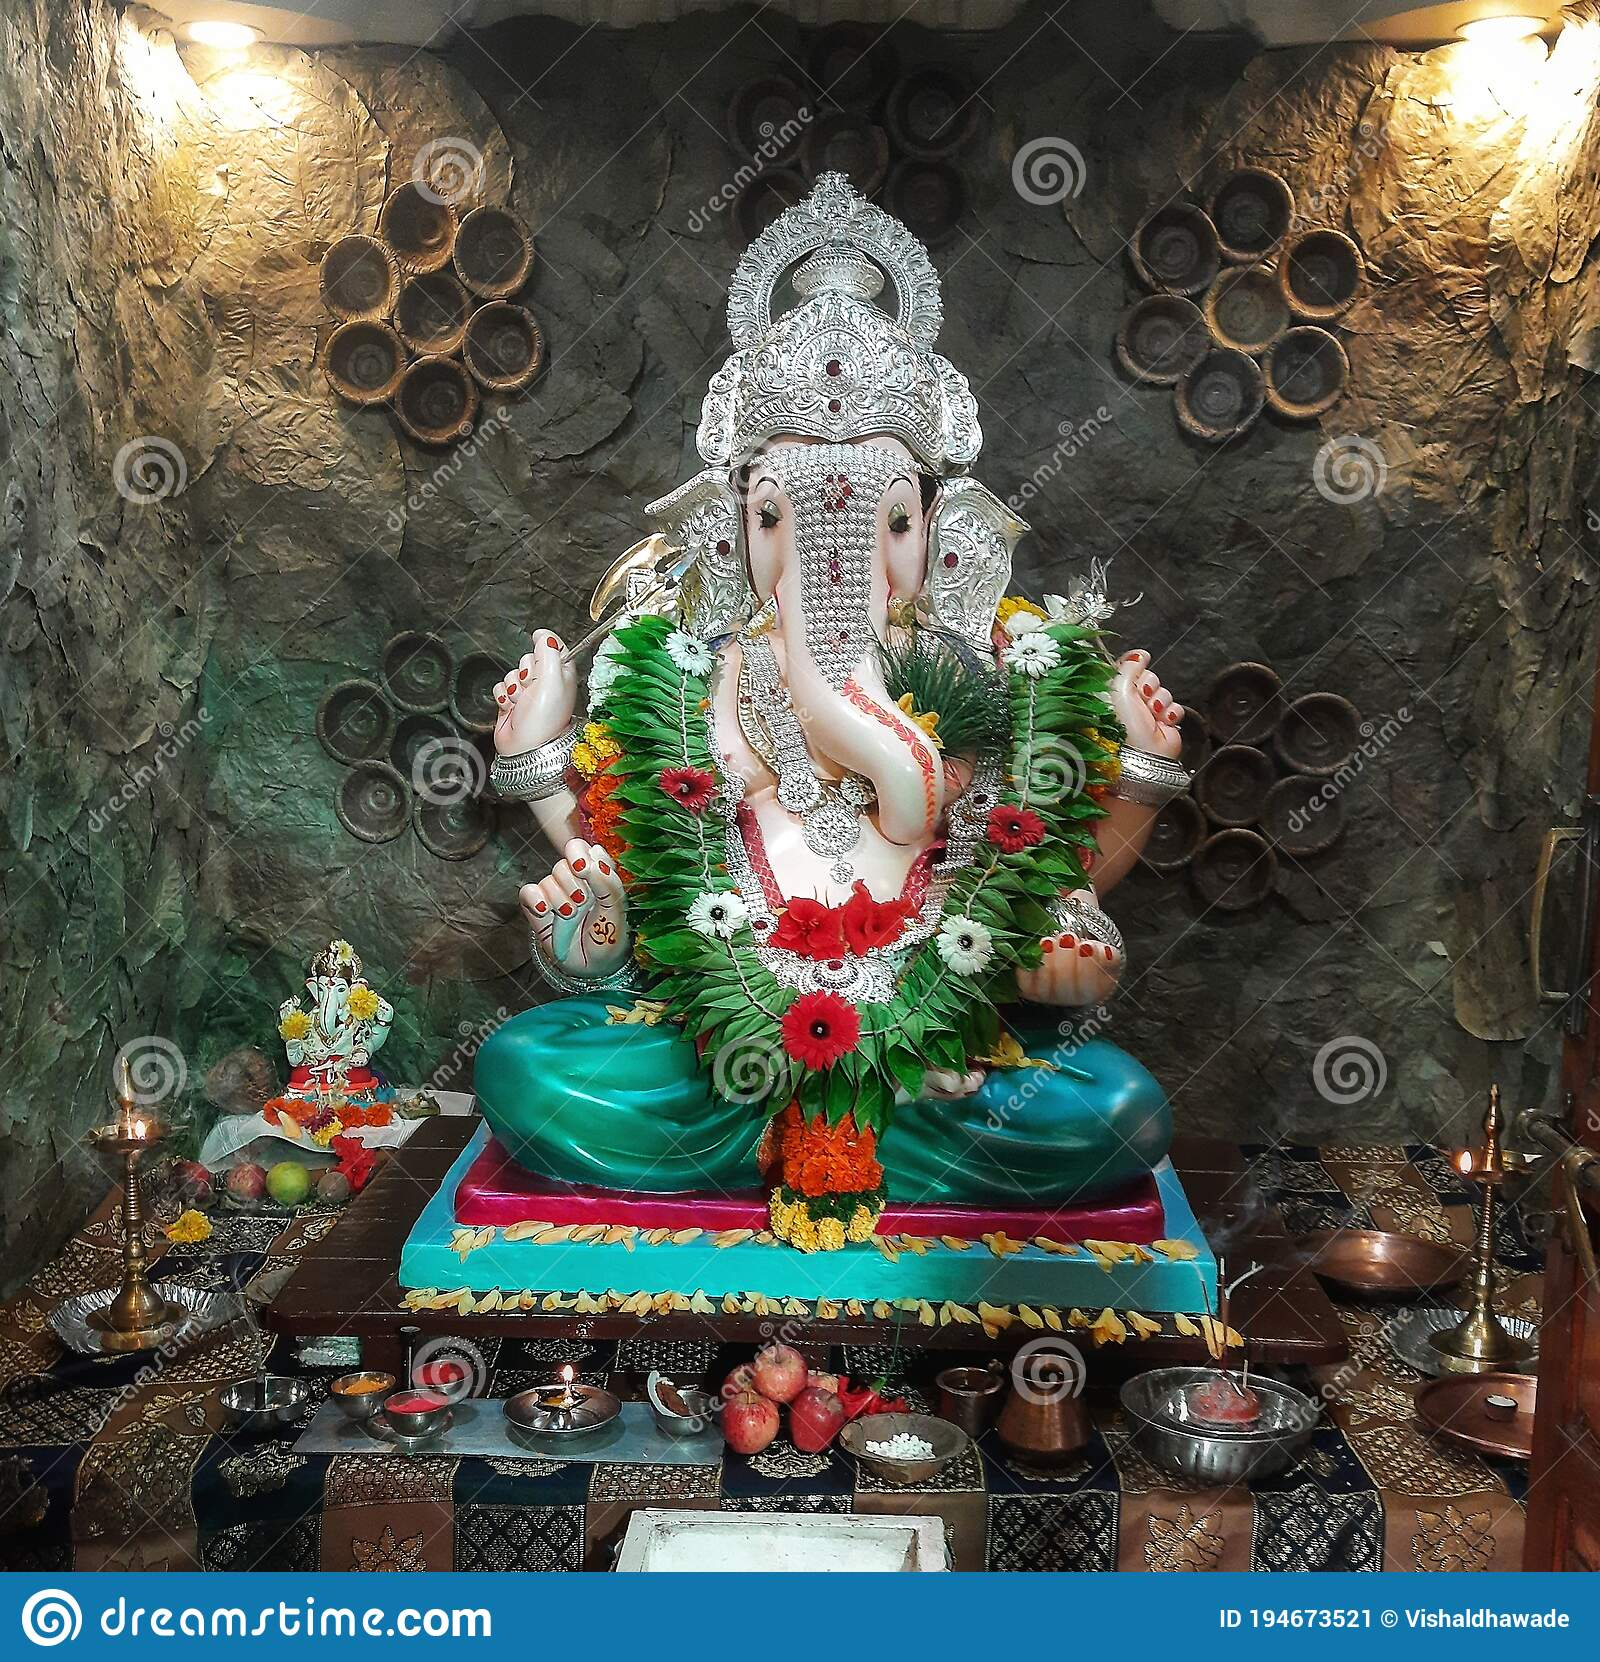 3 553 Beautiful Lord Ganesha Photos Free Royalty Free Stock Photos From Dreamstime